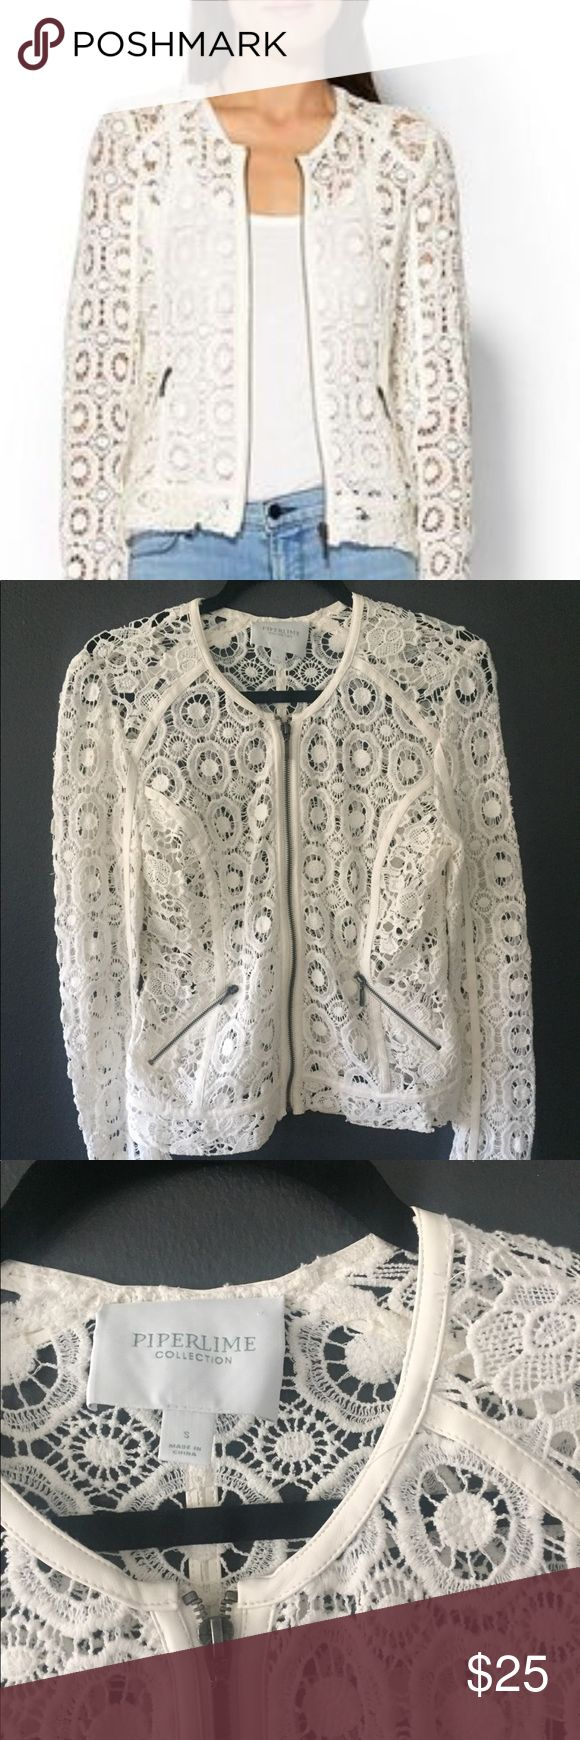 Piperlime White Lace Zip Up Jacket Small 🍋 White lace/crocheted zip up jacket with white piping from Piperlime, size small. Excellent condition! 🍋 Piperlime Jackets & Coats